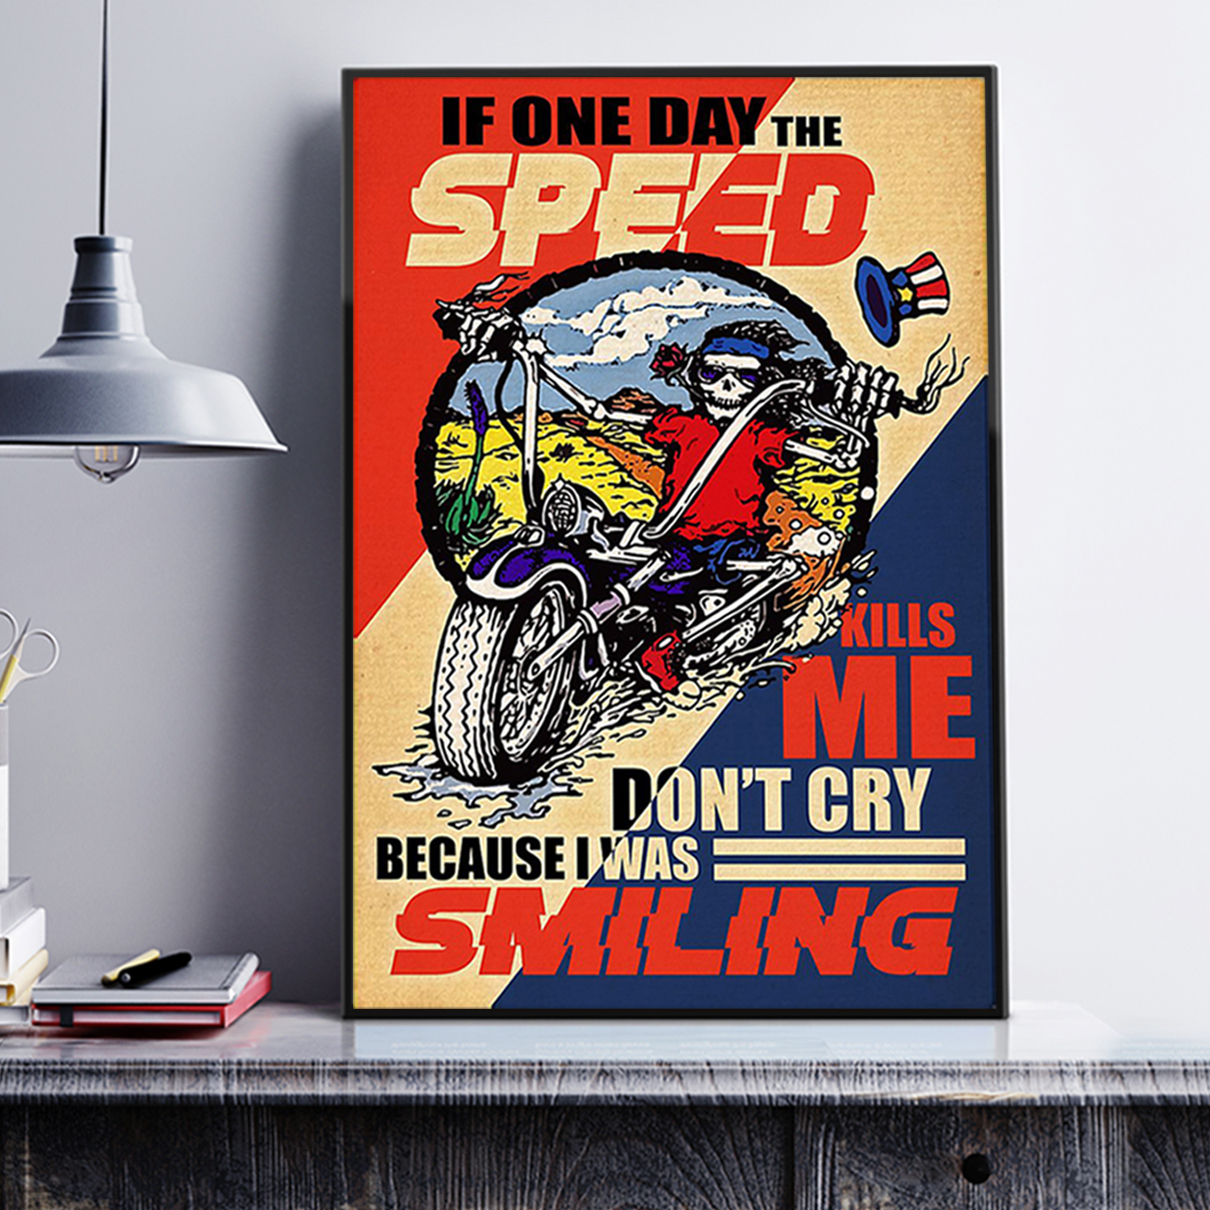 If one day the speed kills me don't cry because i was smiling poster A3